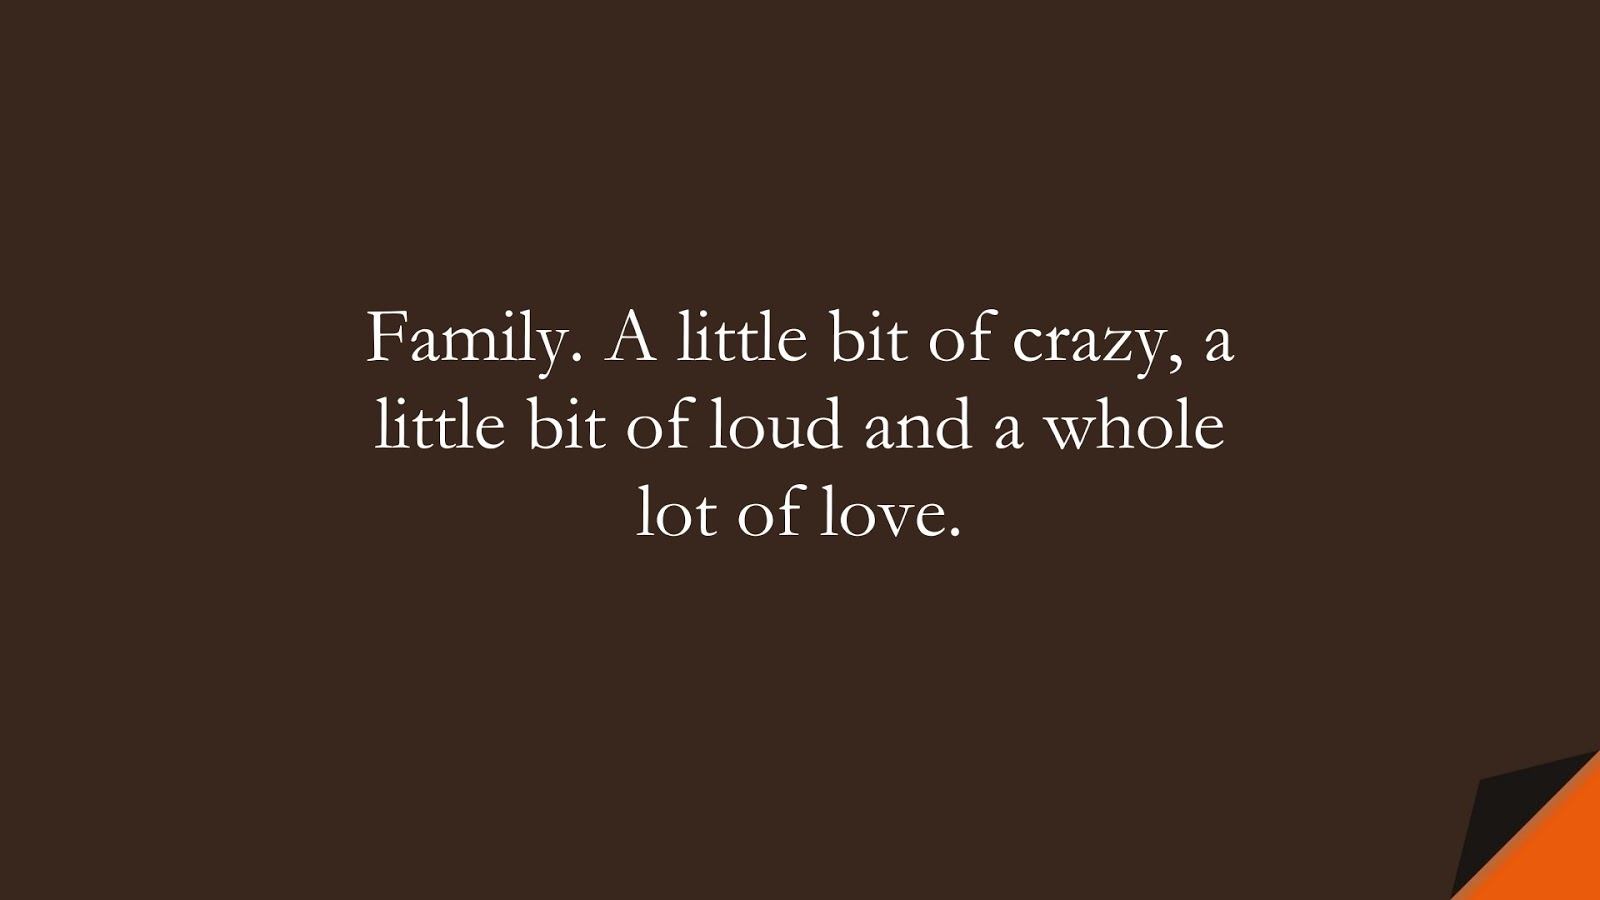 Family. A little bit of crazy, a little bit of loud and a whole lot of love.FALSE